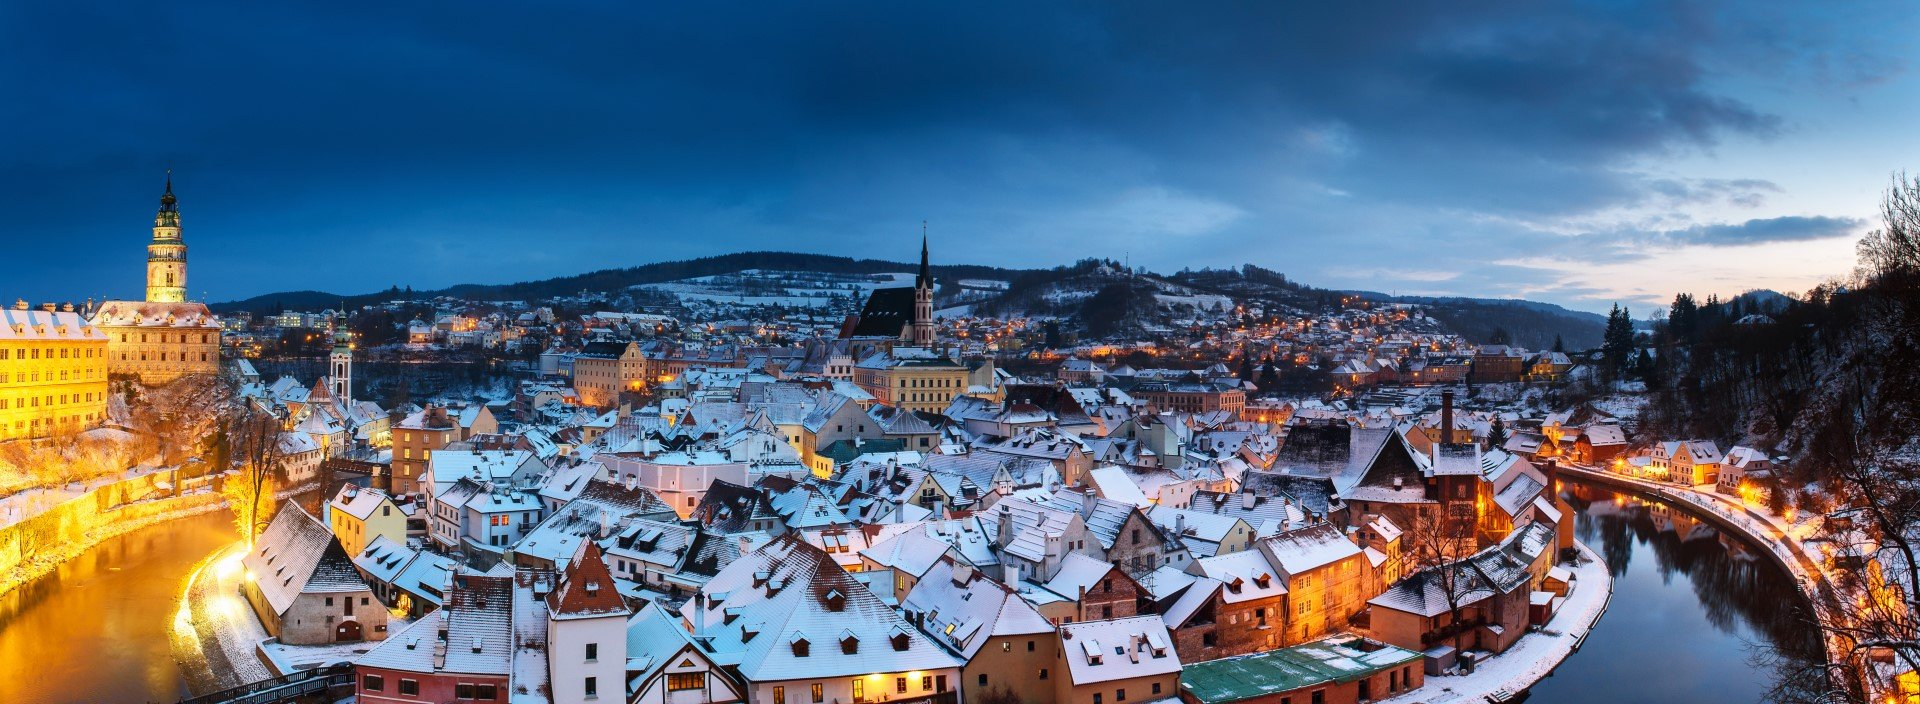 Take a time travel adventure back to the Middle Ages and visit Český Krumlov on a full-day private group tour.